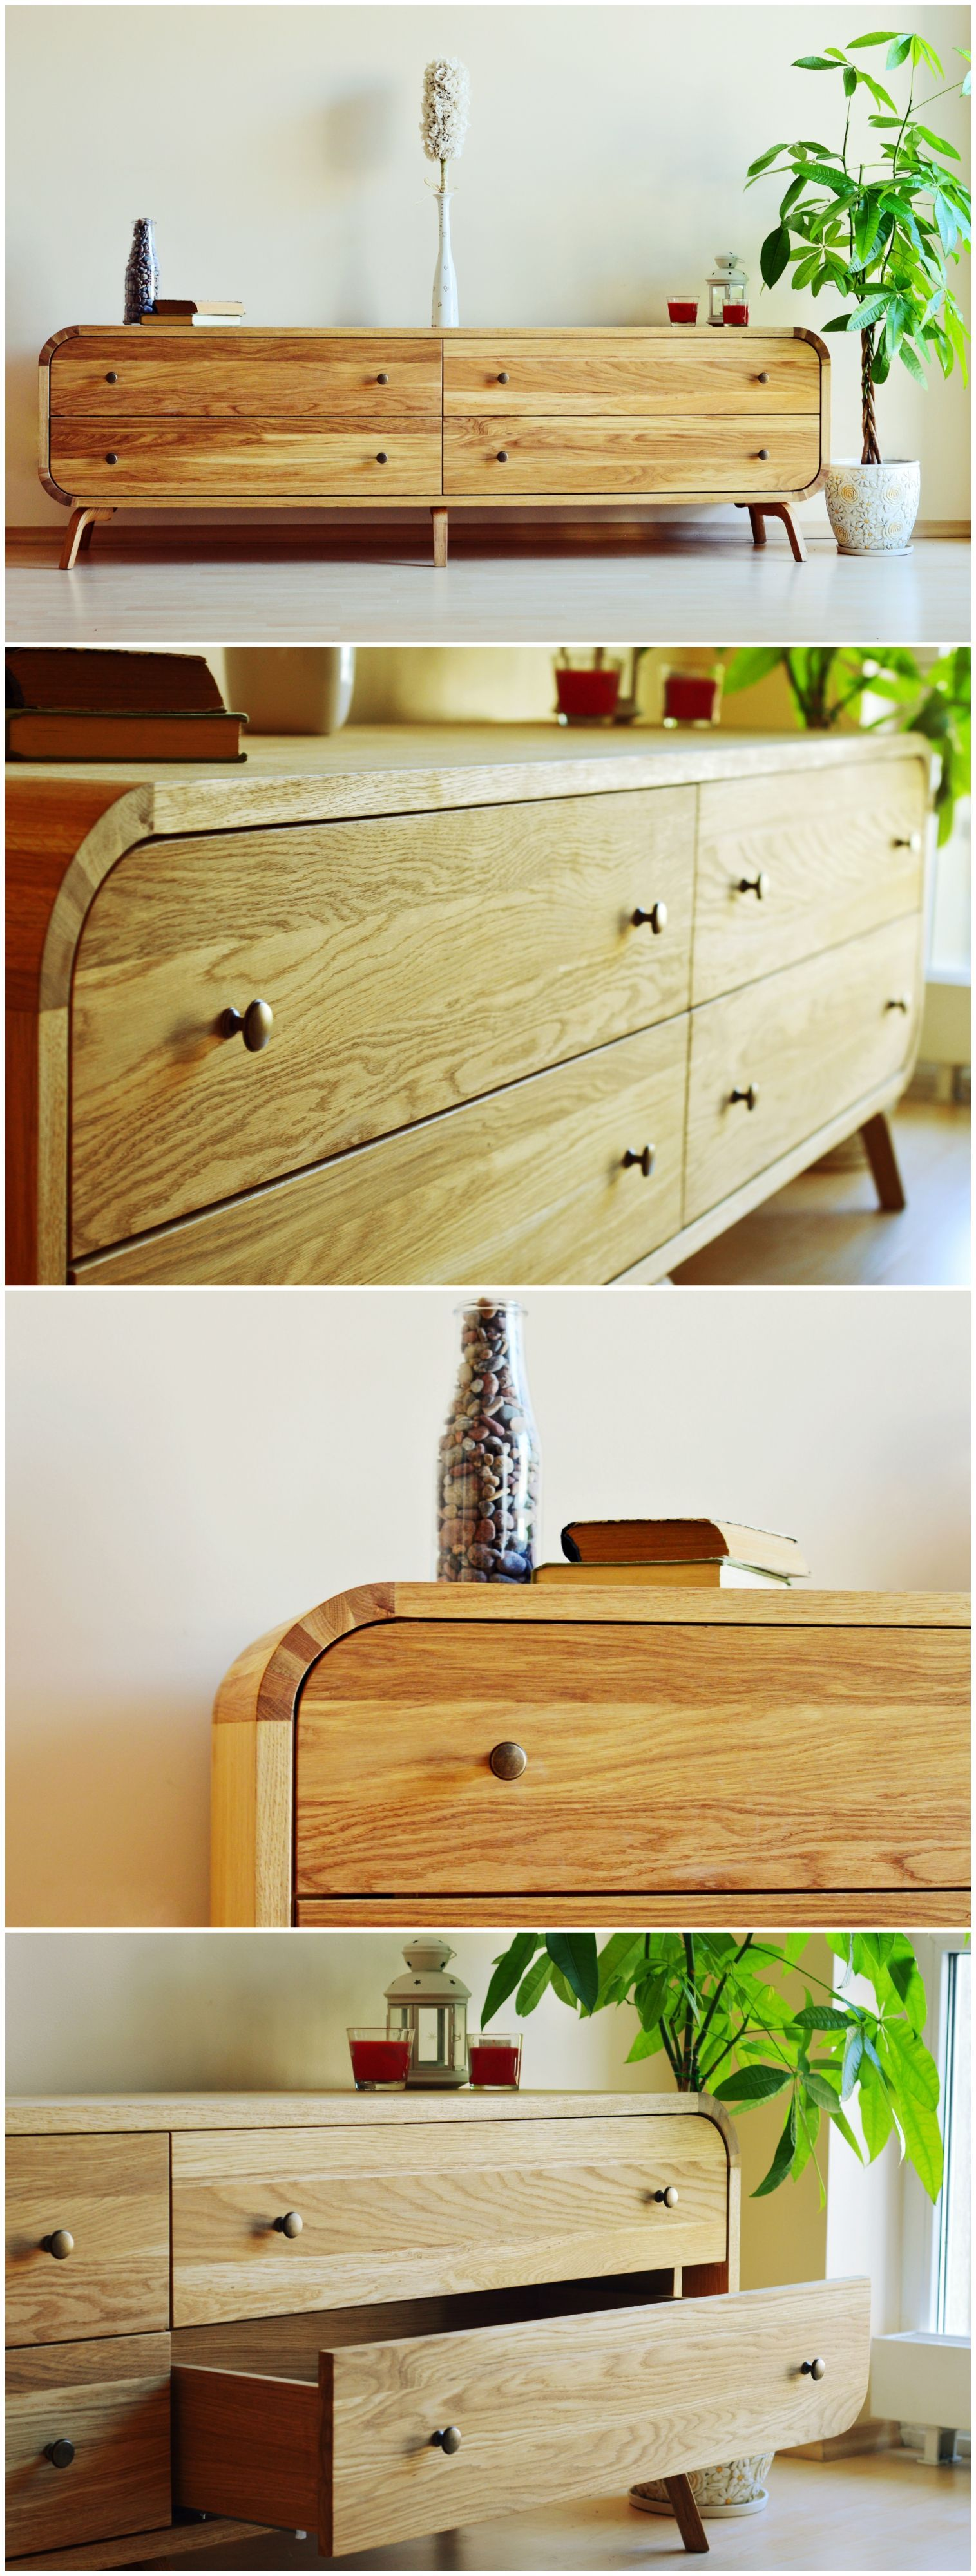 Chest Of Drawers Dresser Luxury Furniture Cabinet Low Cabinet Tv Console Midcentury Living Room Design Wood Living Room Decor Furniture Modern Furniture Sofas